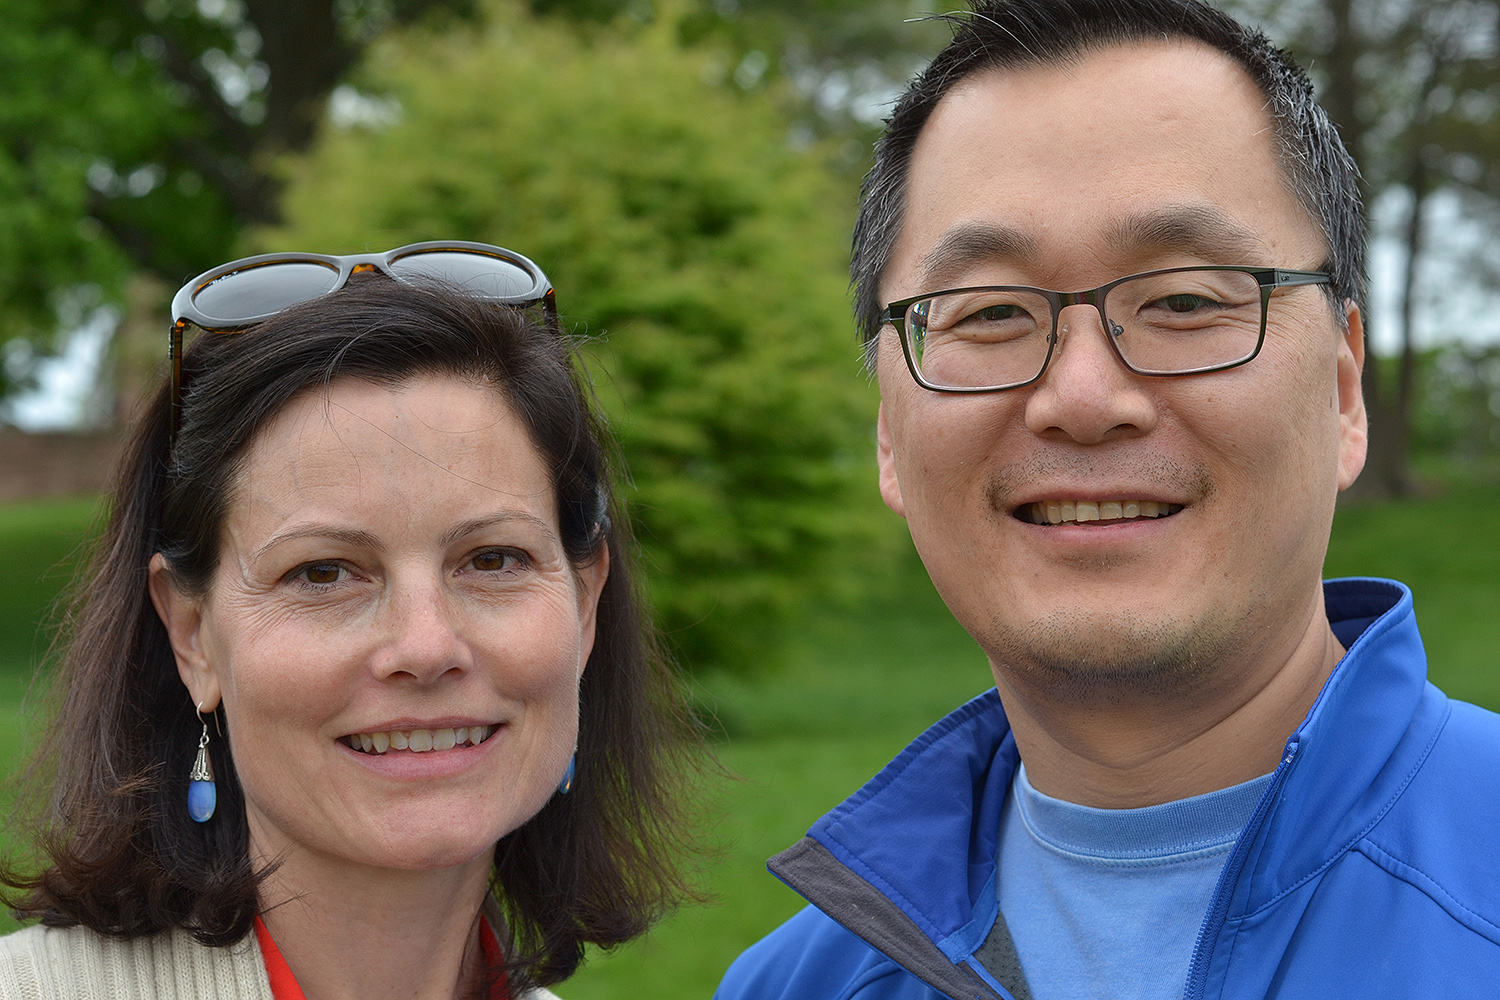 Shelley Trott '91 (Oakland, CA) and Jung Cho '91 (Pittsburgh, Penn.)